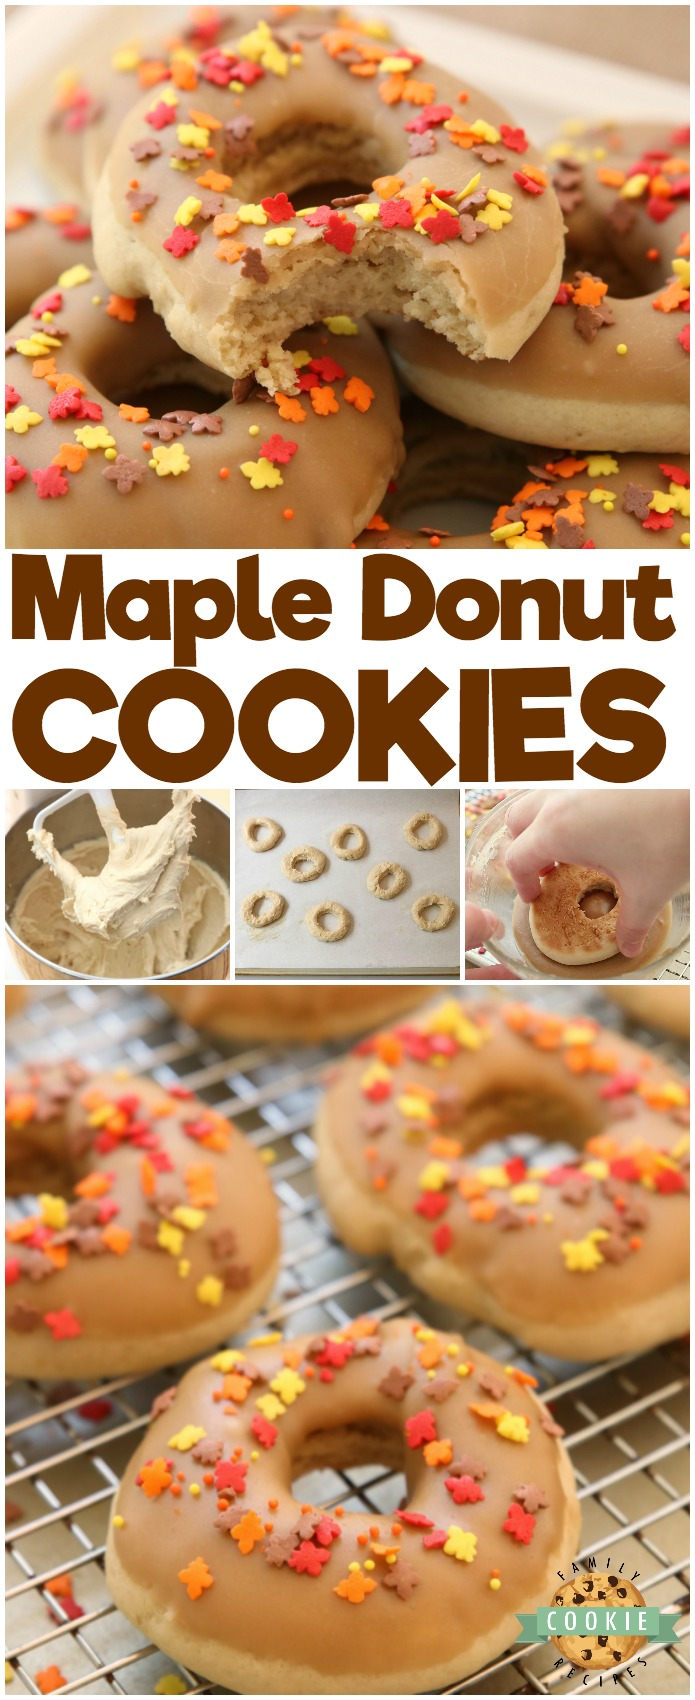 Maple Donut Cookies are soft & pillowy donut-shaped cookies with a lovely maple glaze topping. Everything you love about maple donuts, only in cookie form! #maple #donut #cookies #baking #Fall #frosting #sprinkles #recipe from FAMILY COOKIE RECIPES